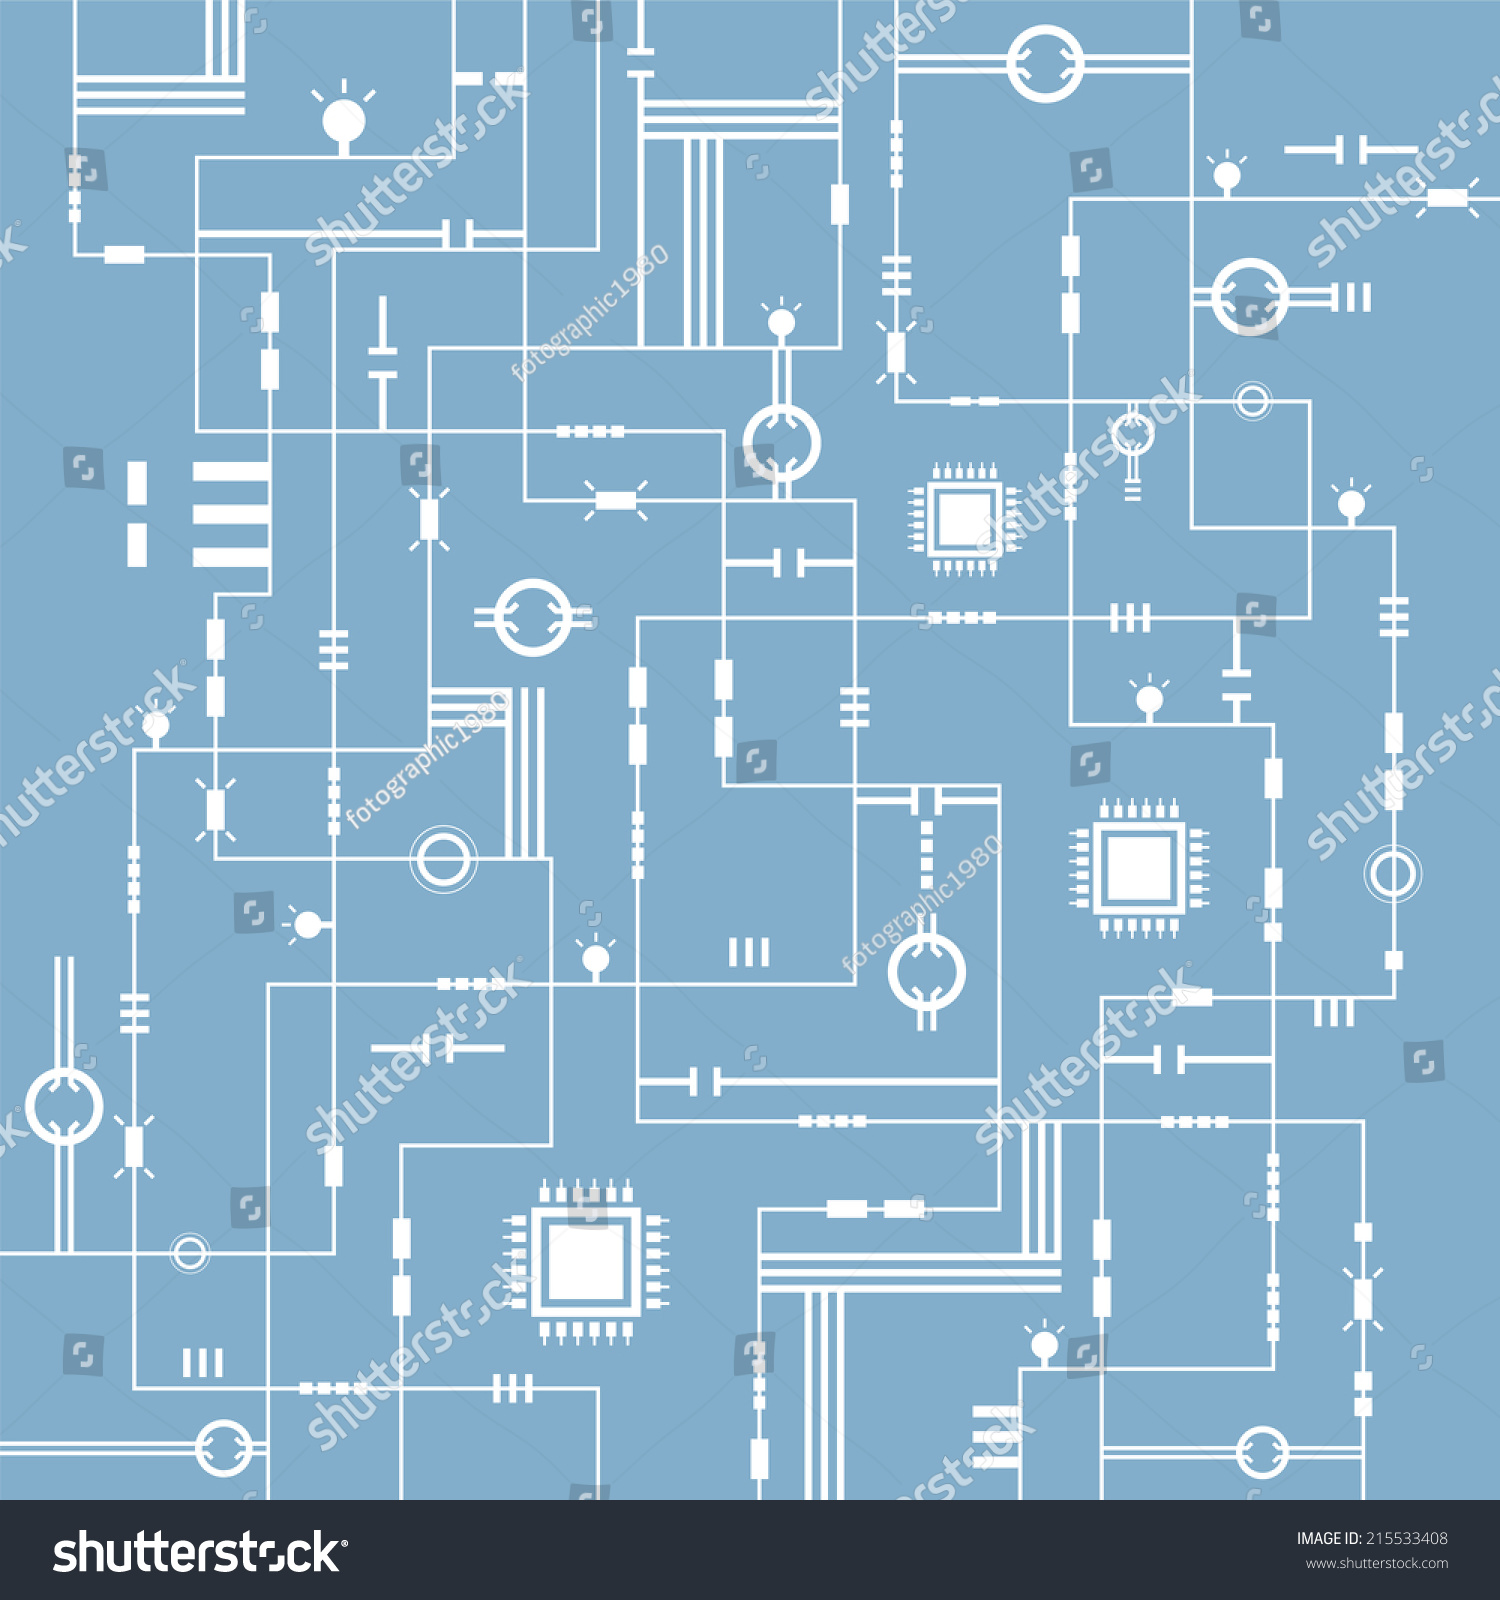 Abstract Technology Electric Circuit Background Vector Illustration Electronic Schematic Stock Photos Id 215533408